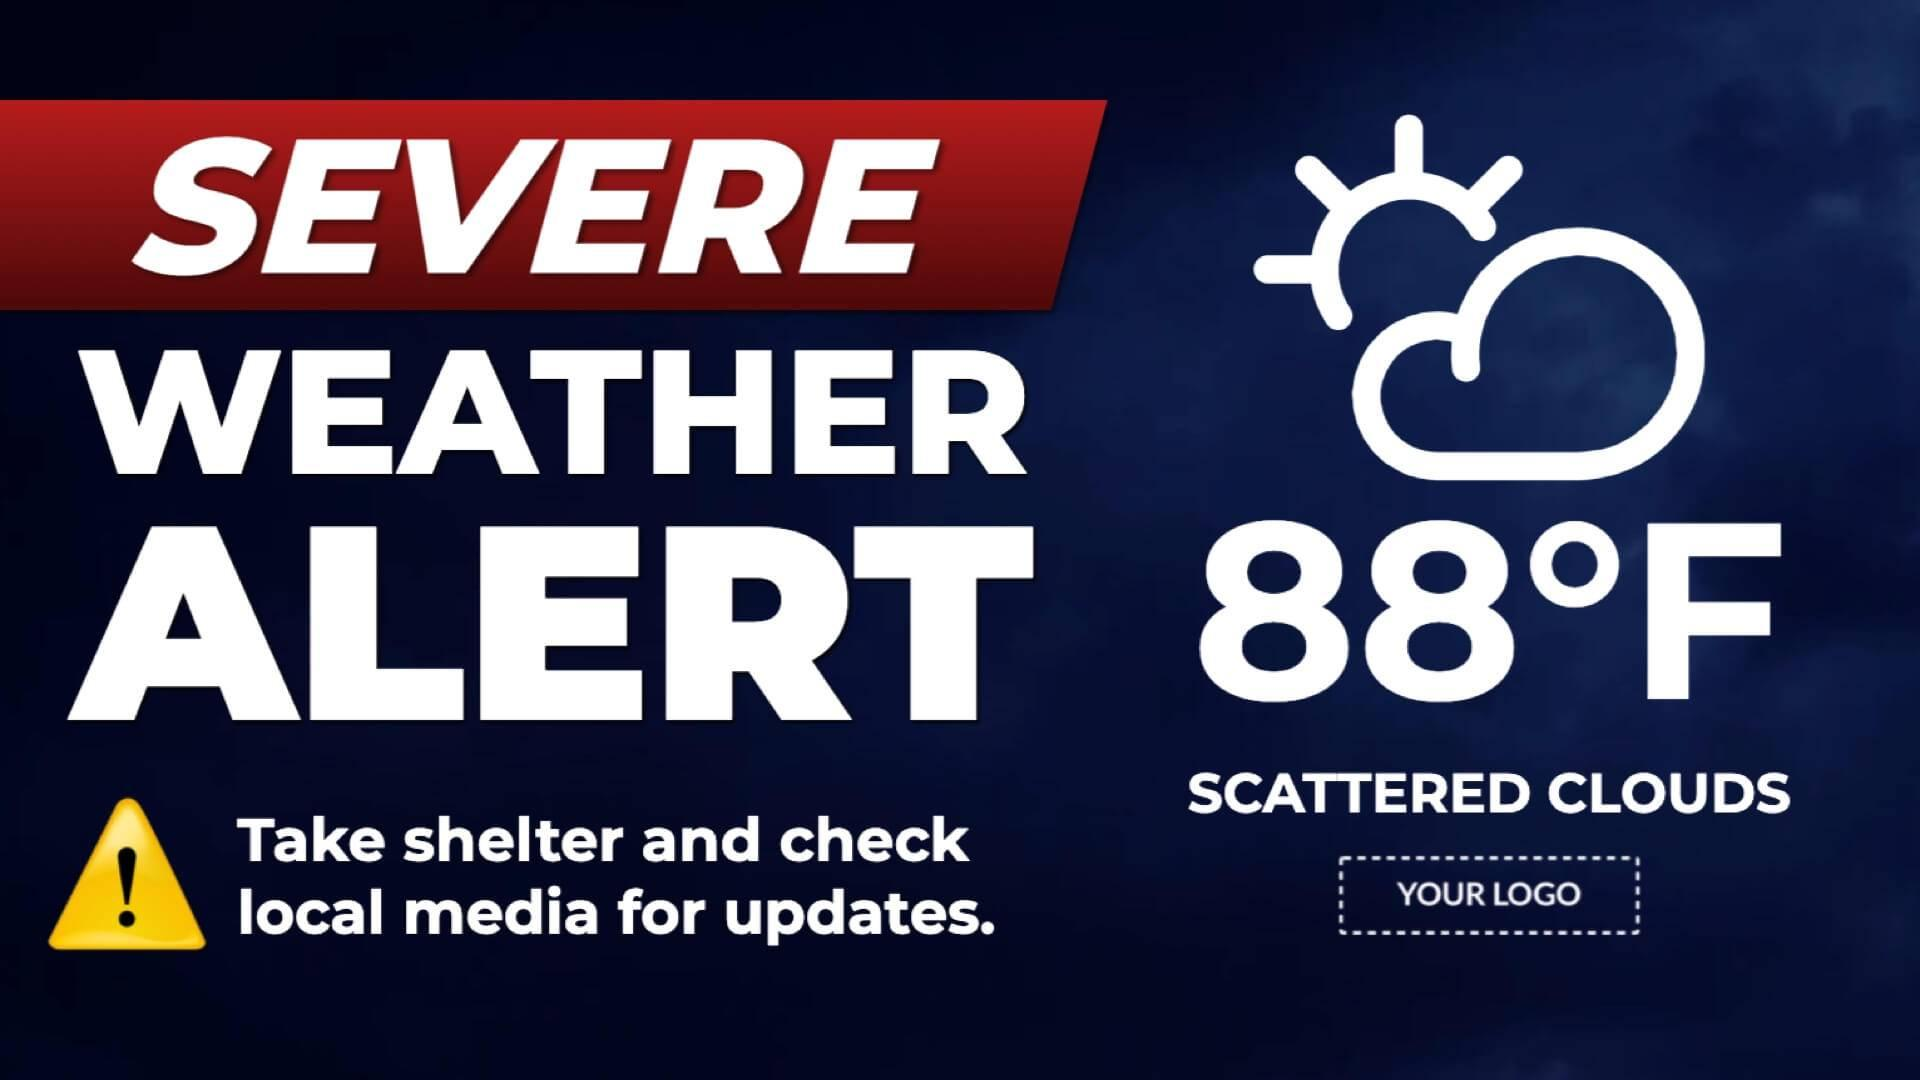 Announcement Severe Weather Alert Digital Signage Template